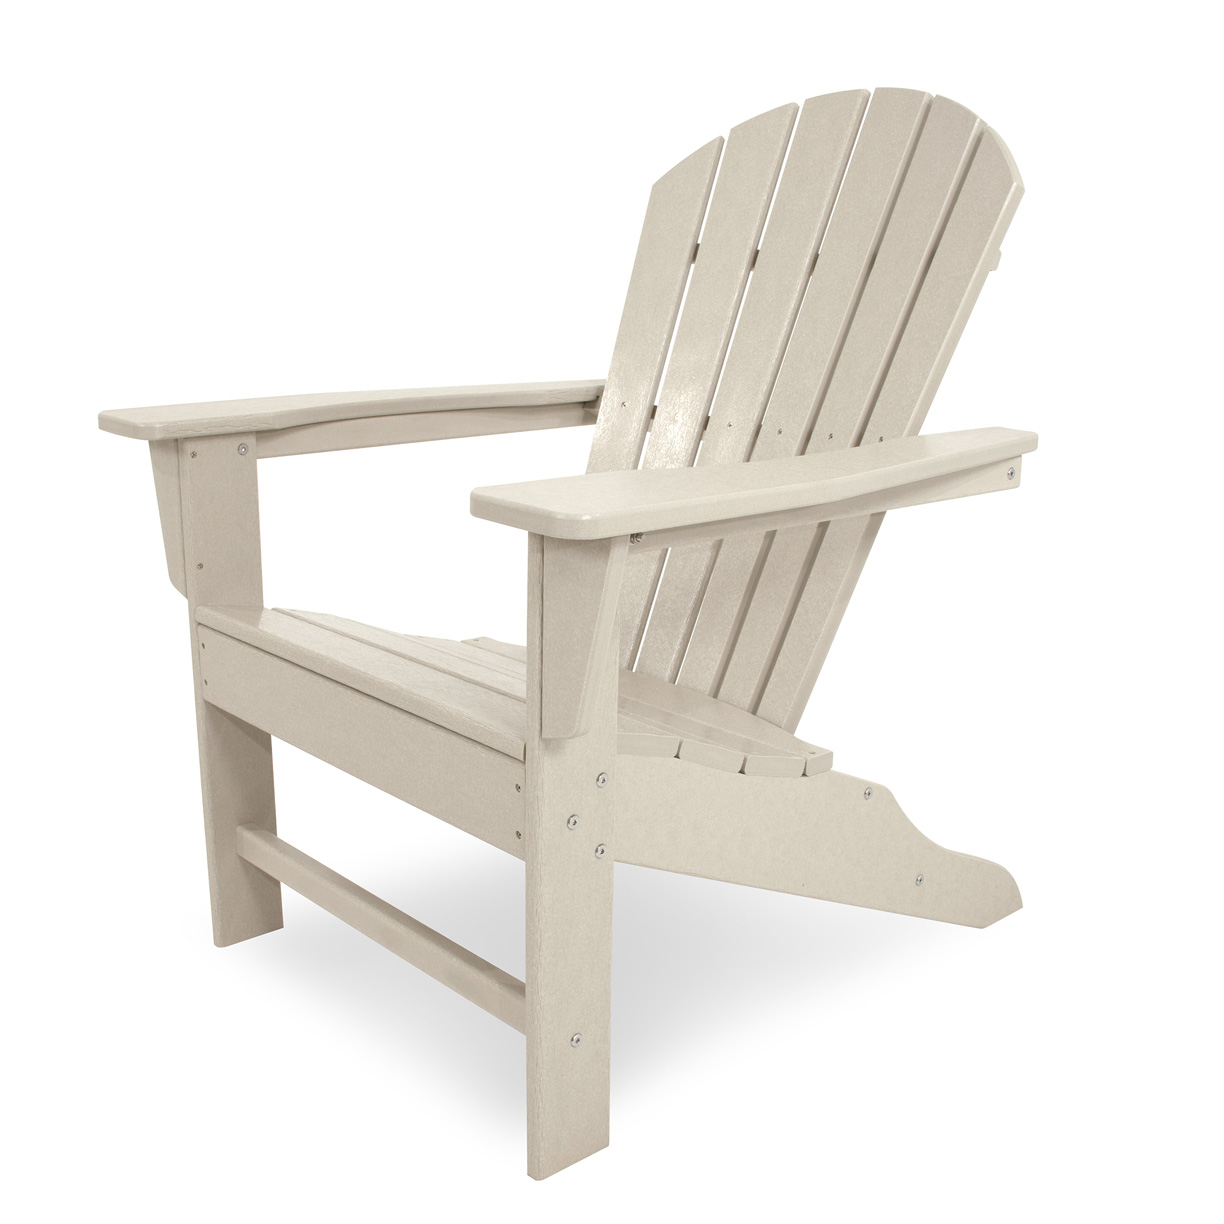 Adams Resin Adirondack Chairs Polywood South Beach Recycled Plastic Adirondack Chair